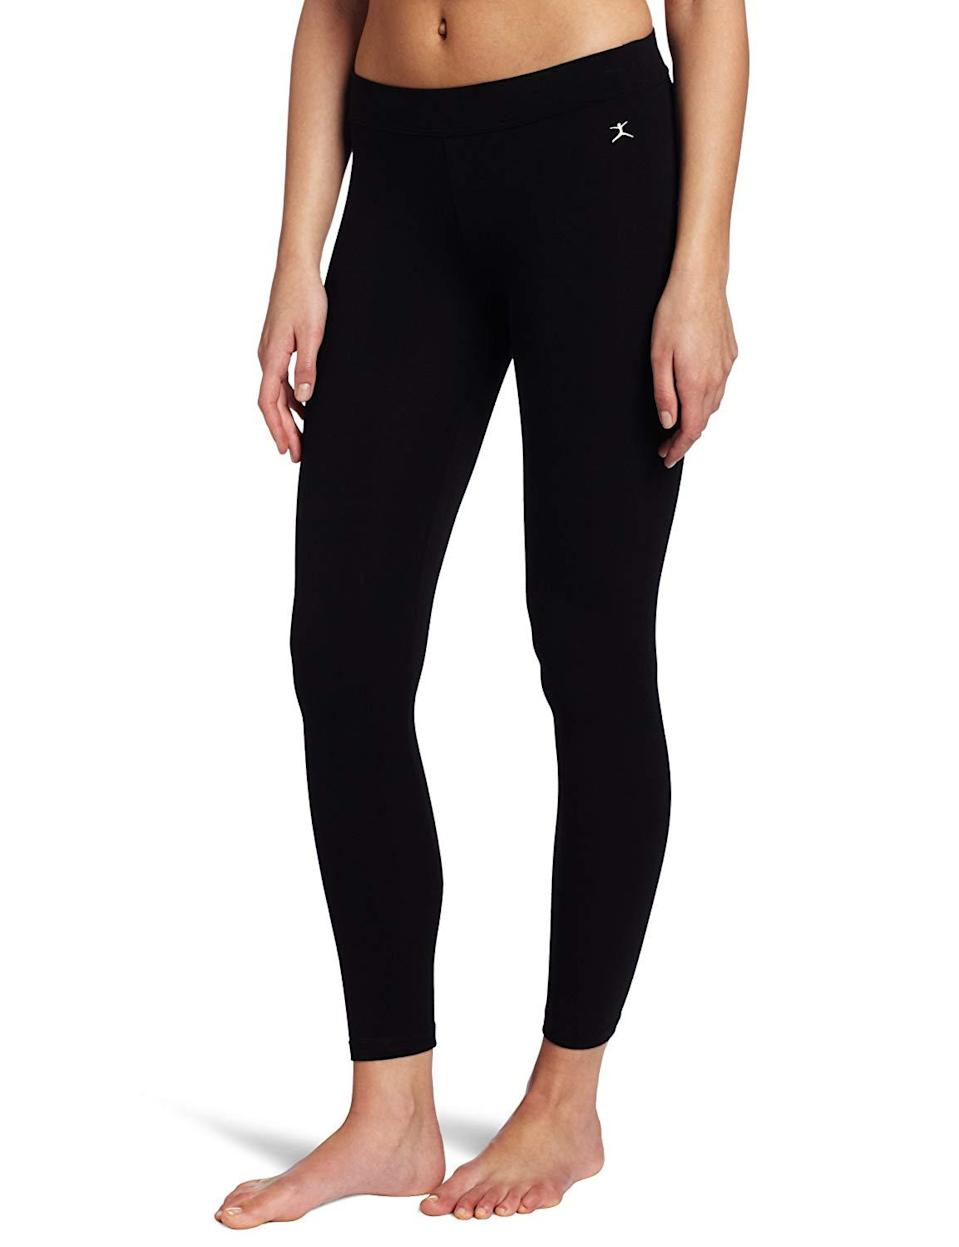 "<h3><a href=""https://www.amazon.com/Danskin-Womens-Essentials-Legging-Medium/dp/B015RFBHKY"" rel=""nofollow noopener"" target=""_blank"" data-ylk=""slk:Danskin Essentials Ankle Legging"" class=""link rapid-noclick-resp"">Danskin Essentials Ankle Legging</a> </h3><br><br>4.1 out of 5 stars and 1,599 reviews<br><br><strong>Promising Review:</strong> User Mistress Mae called these Danskin bottoms her ""<a href=""https://www.amazon.com/gp/customer-reviews/R14ZGH8I6USEXJ"" rel=""nofollow noopener"" target=""_blank"" data-ylk=""slk:gateway leggings"" class=""link rapid-noclick-resp"">gateway leggings</a>"" citing, ""[I] bought one pair in 2014, and another in 2015, and both are still in excellent shape. I've worn them during all sorts of exercise, including running, pilates, yoga, cardio, and weightlifting, and they never slide or show unmentionables. They are durable, comfortable, and opaque. They're also excellent as regular old non-exercise pants*. In fact, I'm wearing them right now...*Leggings are pants. And if someone disagrees with you on that point, just gotta look your hater straight in the eye, say IDGAF, and carry on living your life.""<br><br><strong>Danskin</strong> Essentials Ankle Legging, $, available at <a href=""https://www.amazon.com/Danskin-Womens-Essentials-Legging-Medium/dp/B015RFBHKY"" rel=""nofollow noopener"" target=""_blank"" data-ylk=""slk:Amazon"" class=""link rapid-noclick-resp"">Amazon</a>"